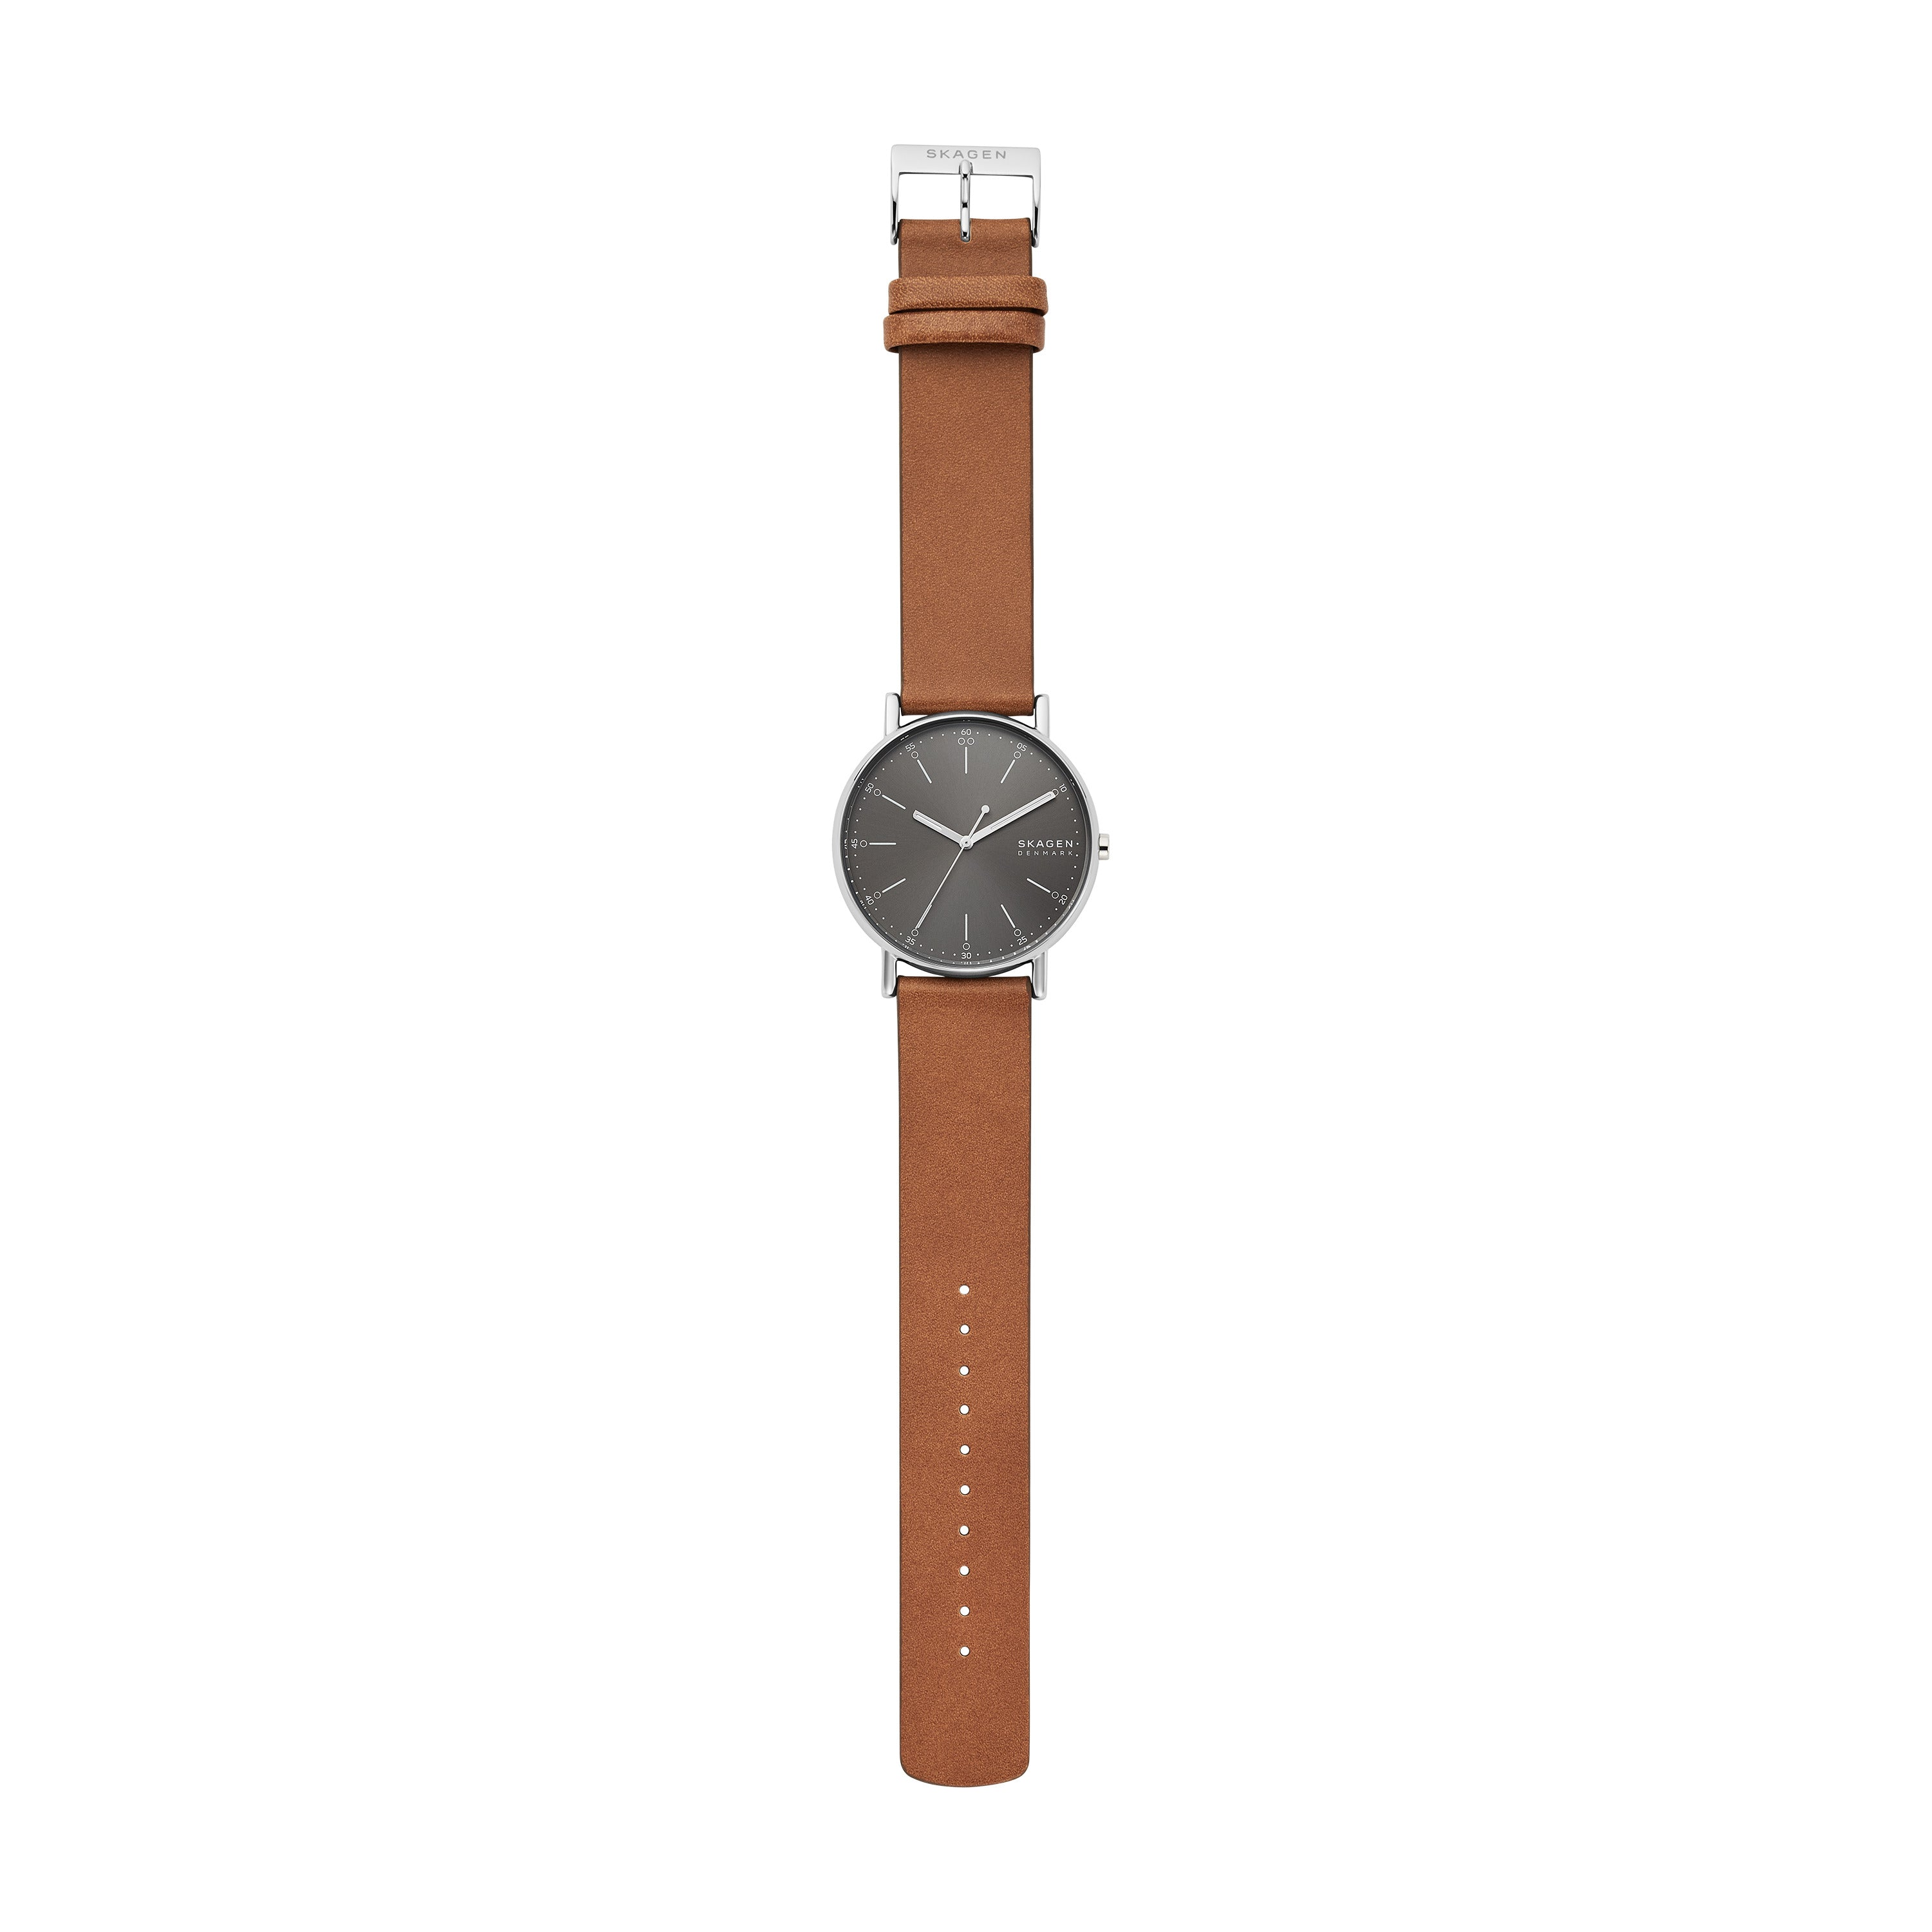 SIGNATUR Three Hand Brown Leather Watch & Silver-Tone Mesh Watch Strap Set